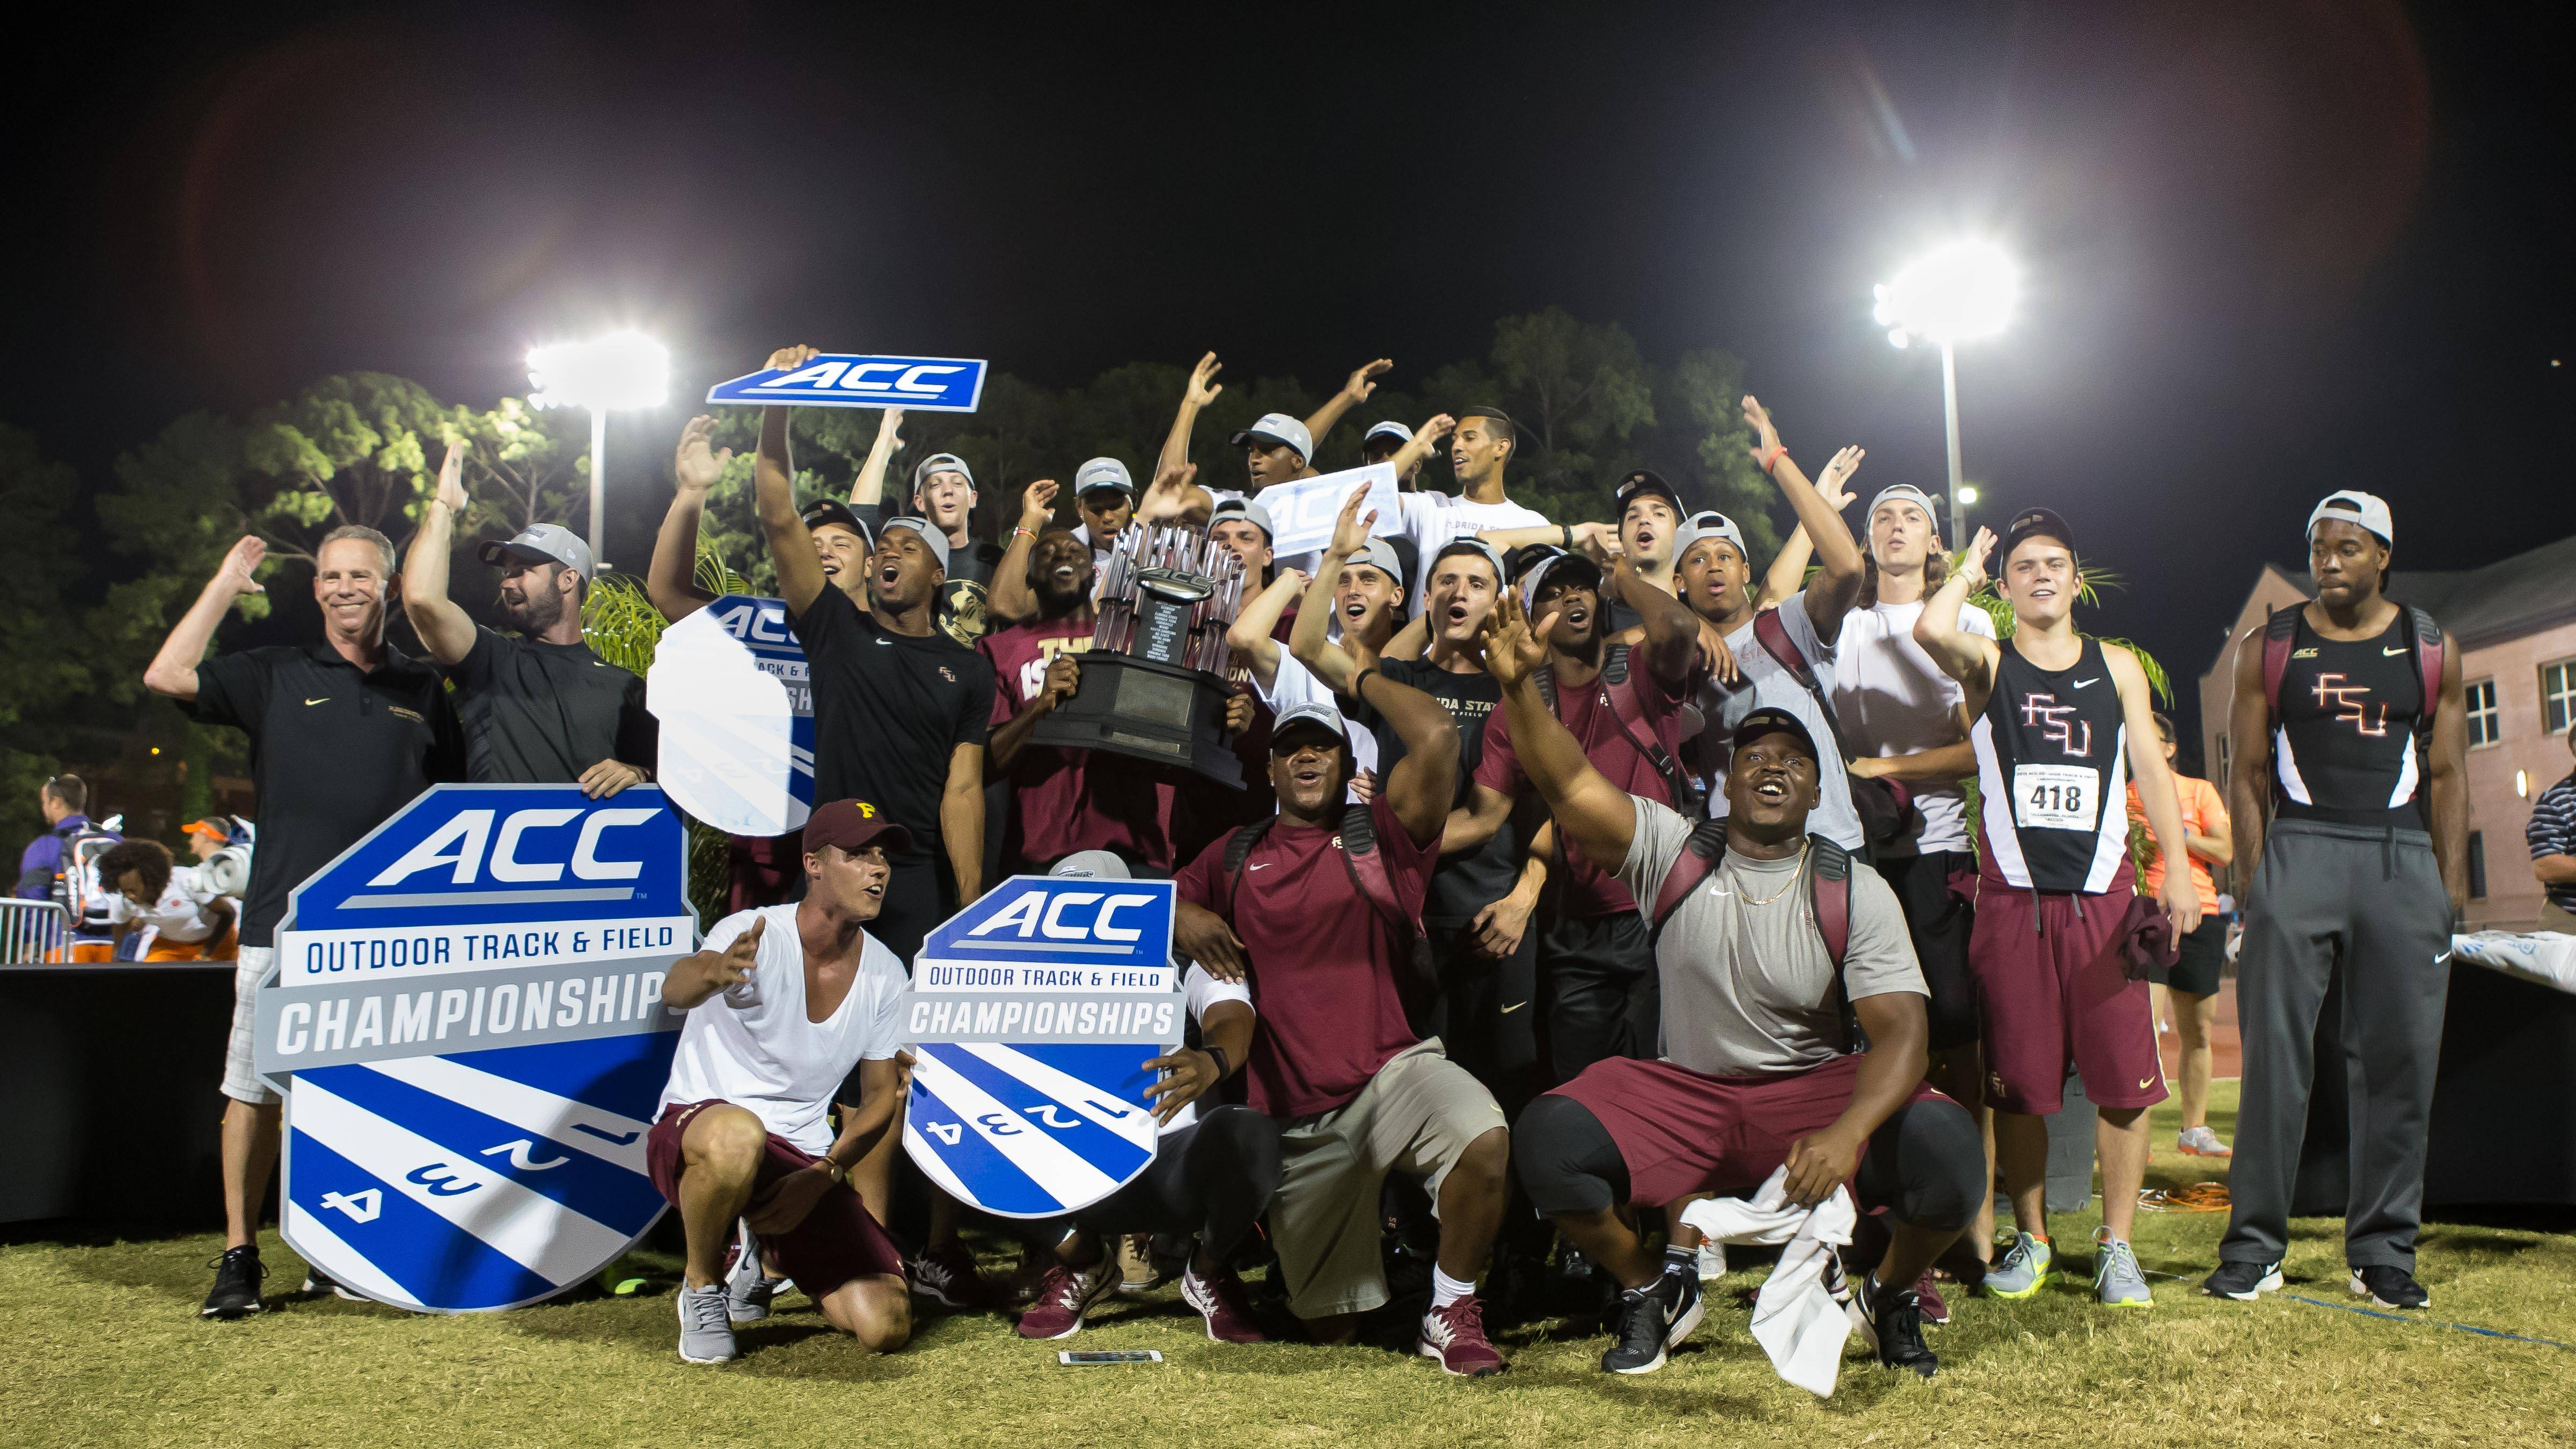 2015 ACC Track and Field Champions